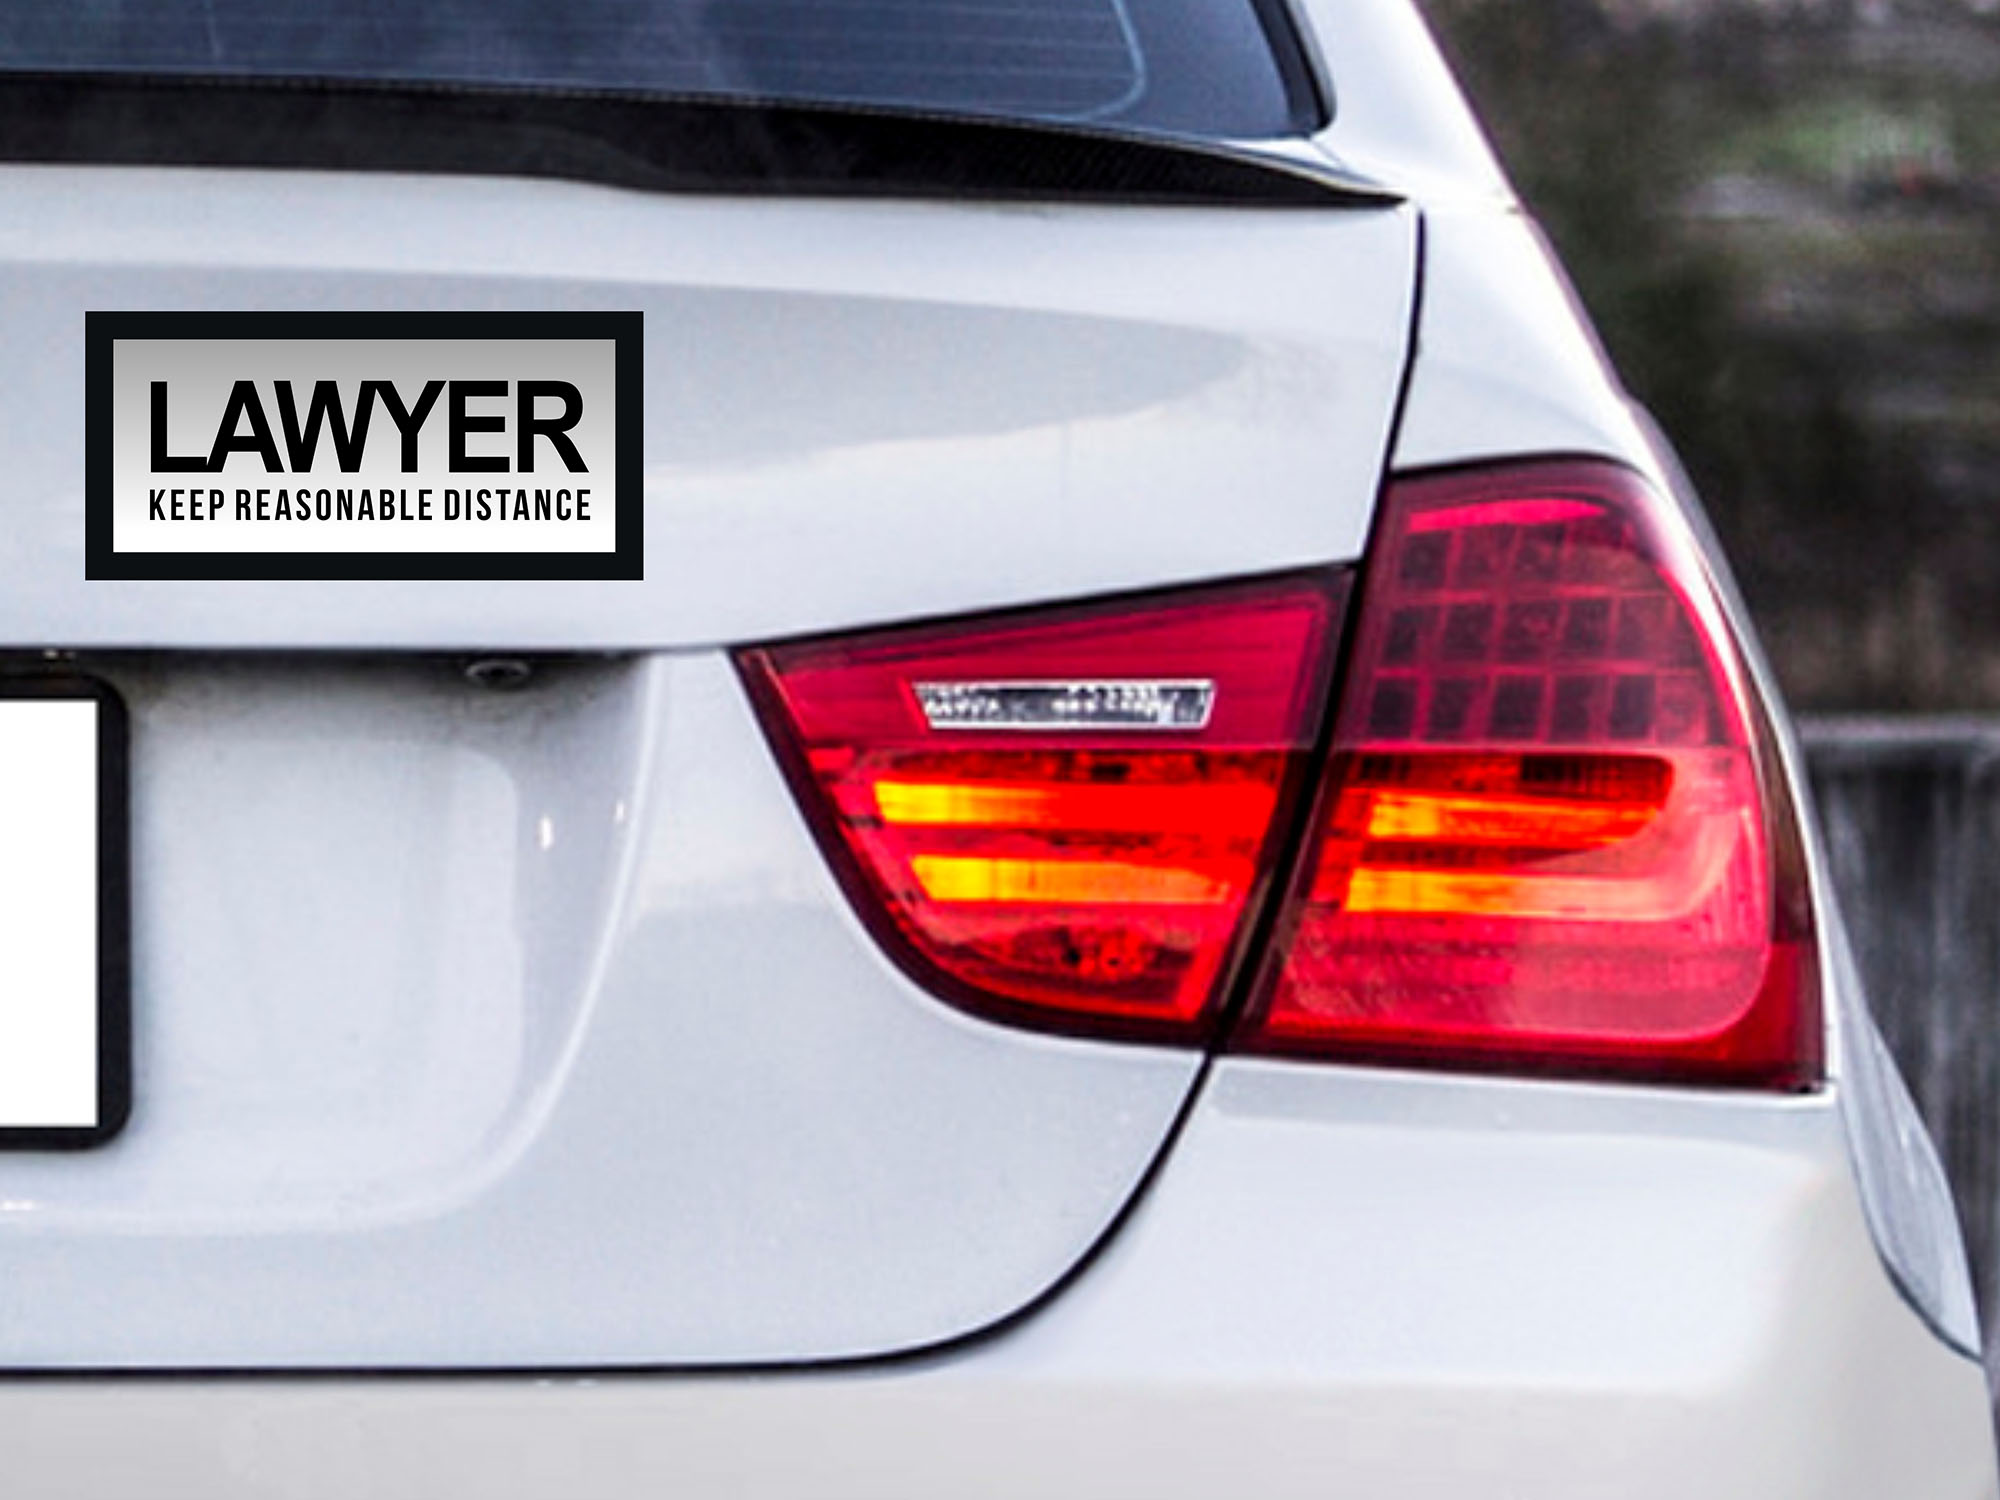 Design and print bumper Stickers made by Kiakiaprint